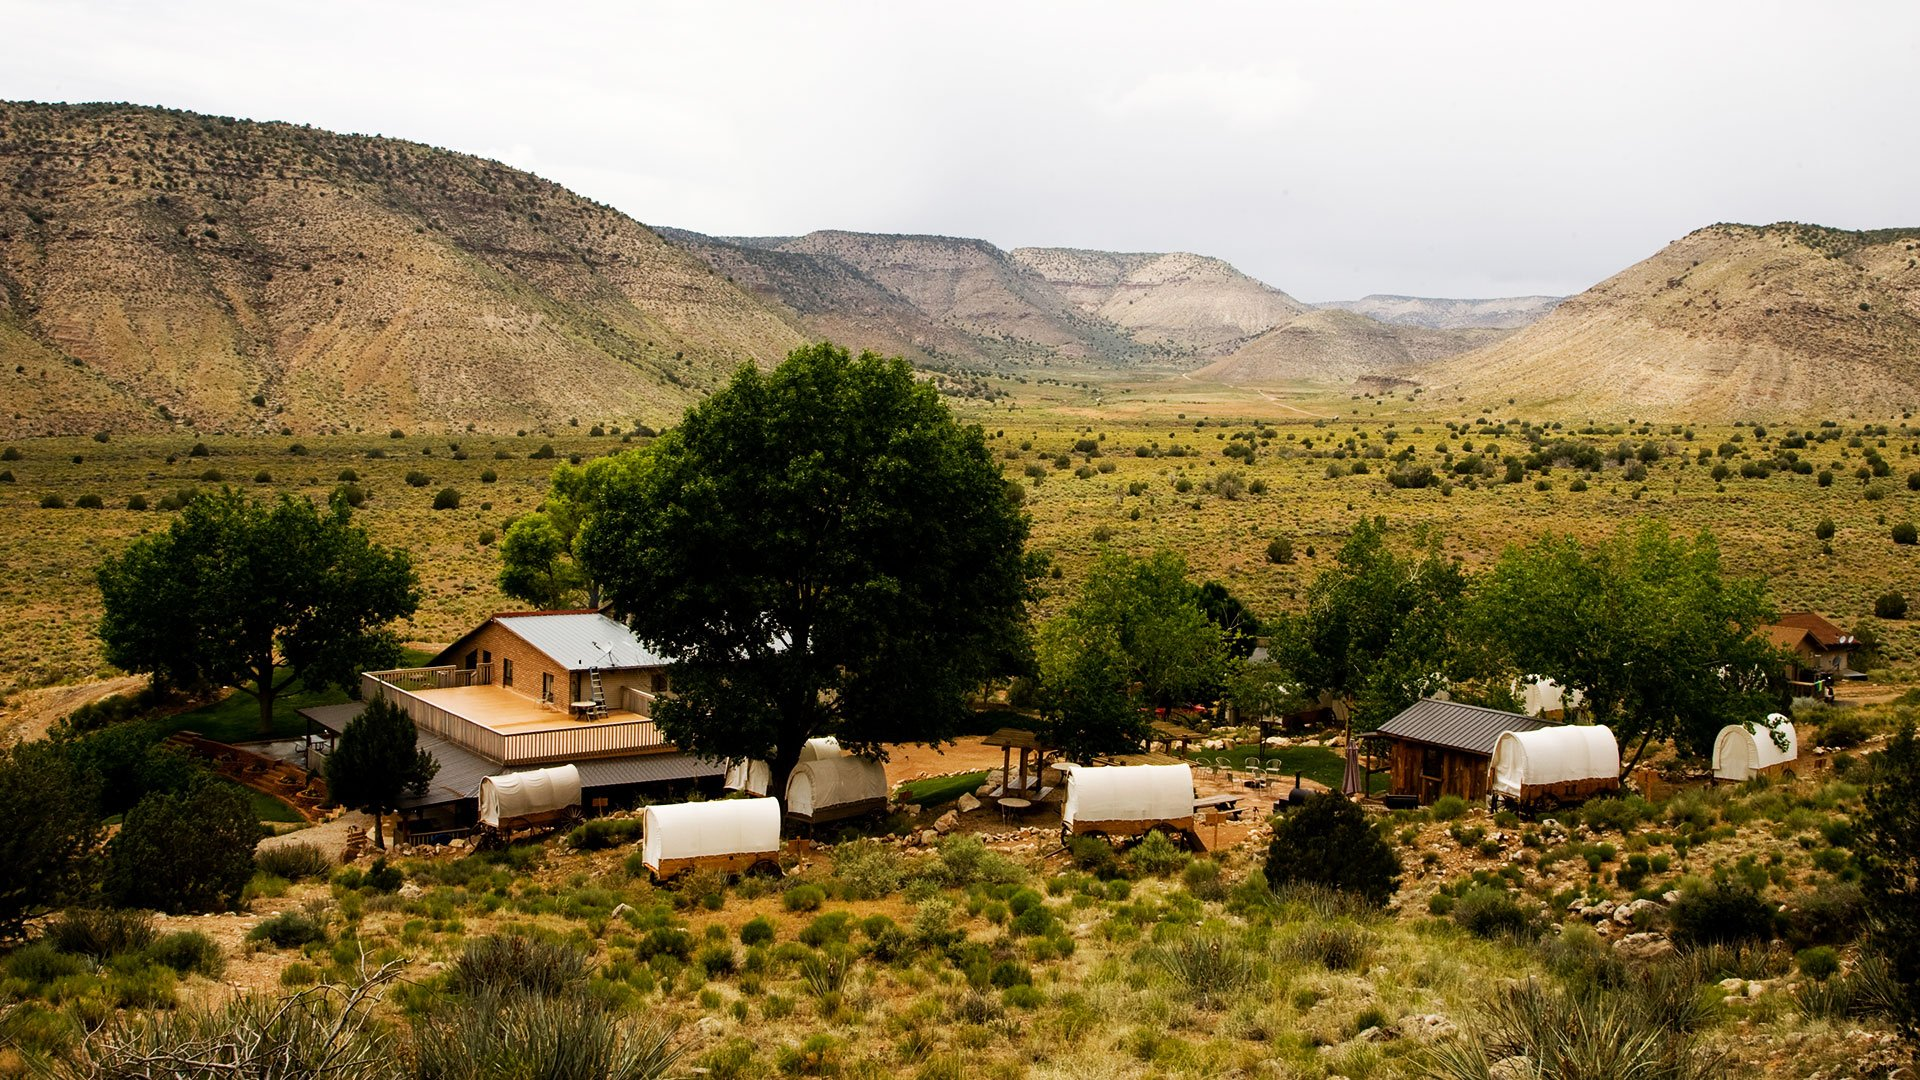 A view of Bar 10 Ranch, their covered wagons, and trees